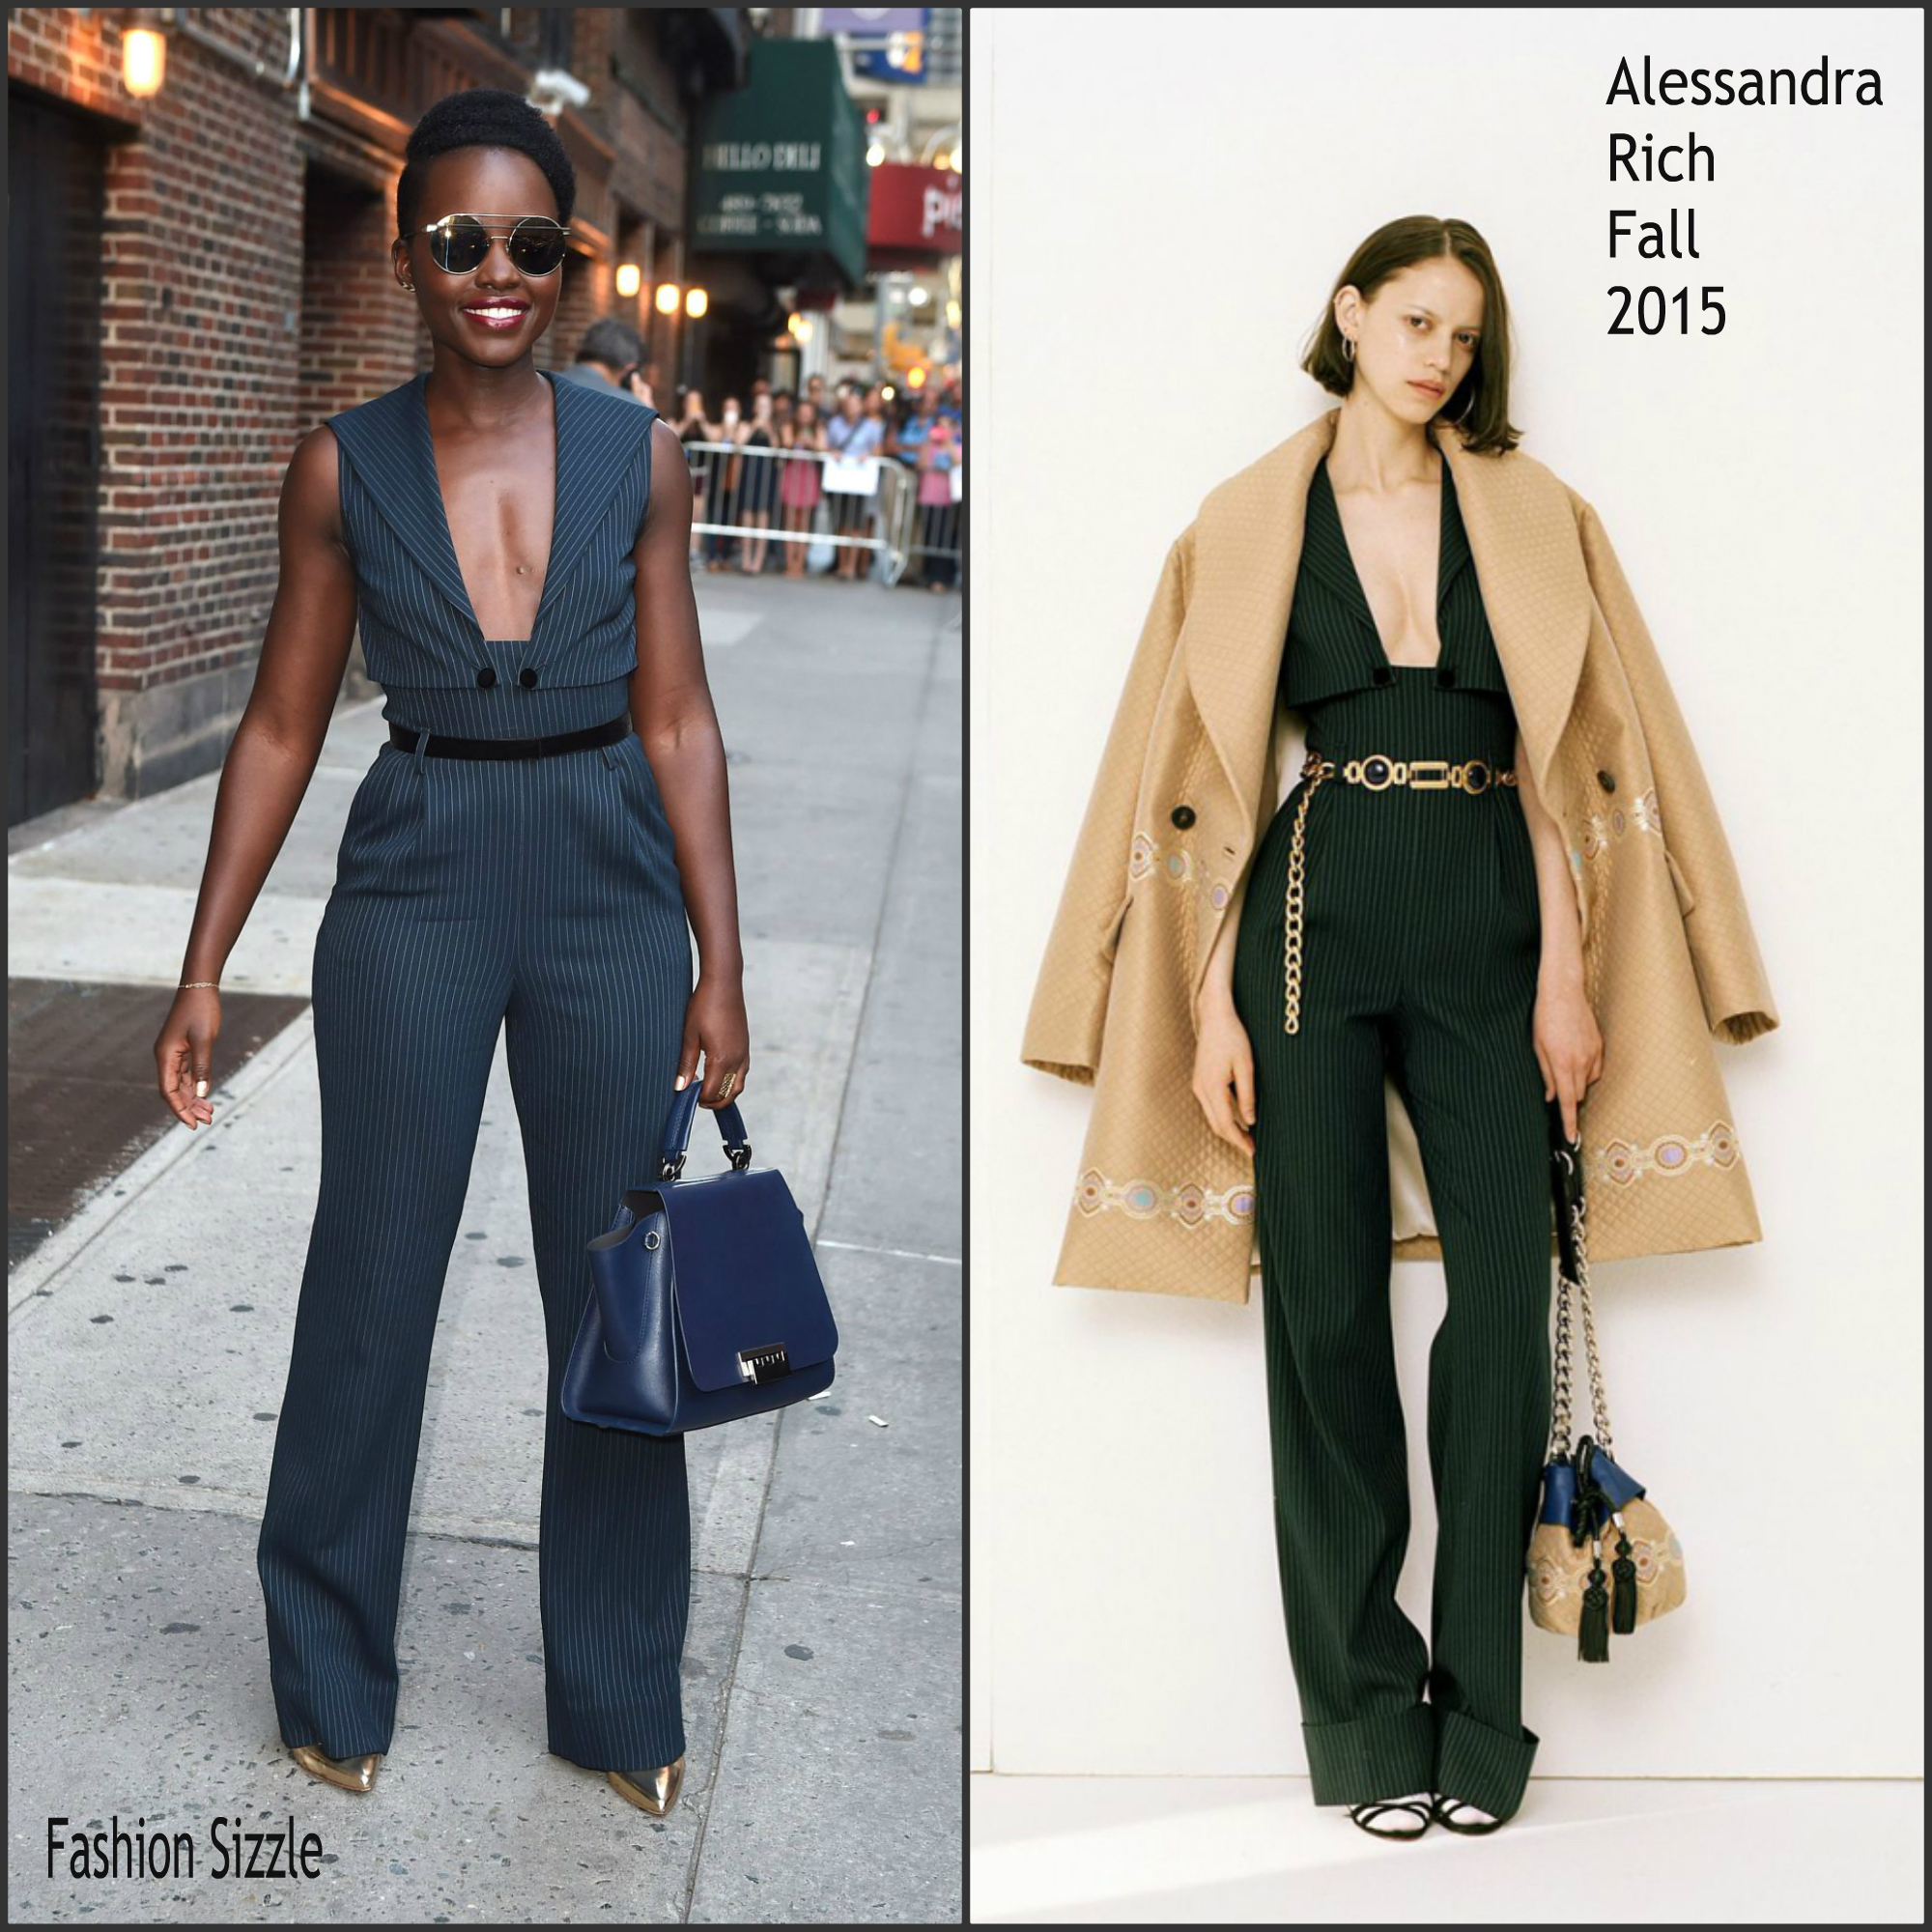 lupita-nyongo-in-alessandra-rich-the-late-show-with-stephen-colbert